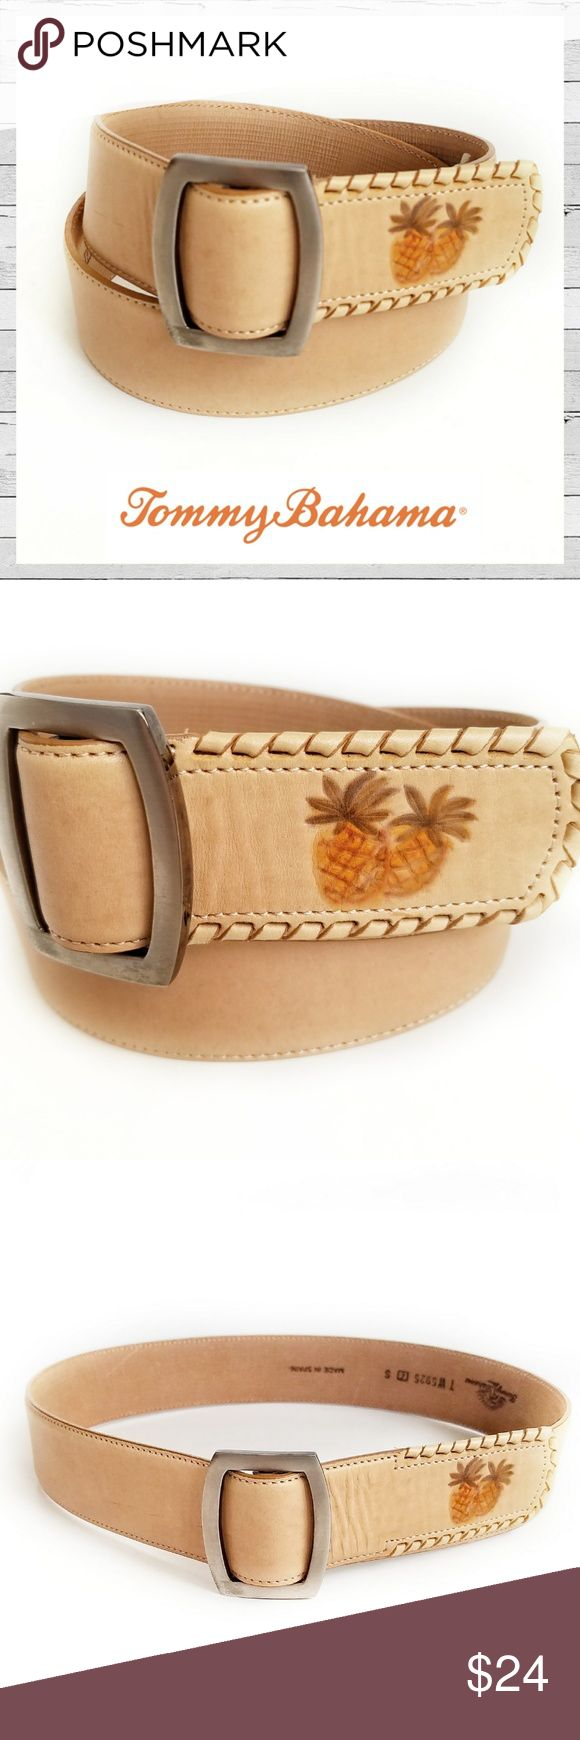 """NWT Tommy Bahama Pineapple Leather Belt Sz S NWT Tommy Bahama Pineapple Embroidered Leather Belt Sz S. Subtle details. Total belt length not including buckle measures 32 1/2"""". Bundle and save! Sorry no trades. Tommy Bahama Accessories Belts"""